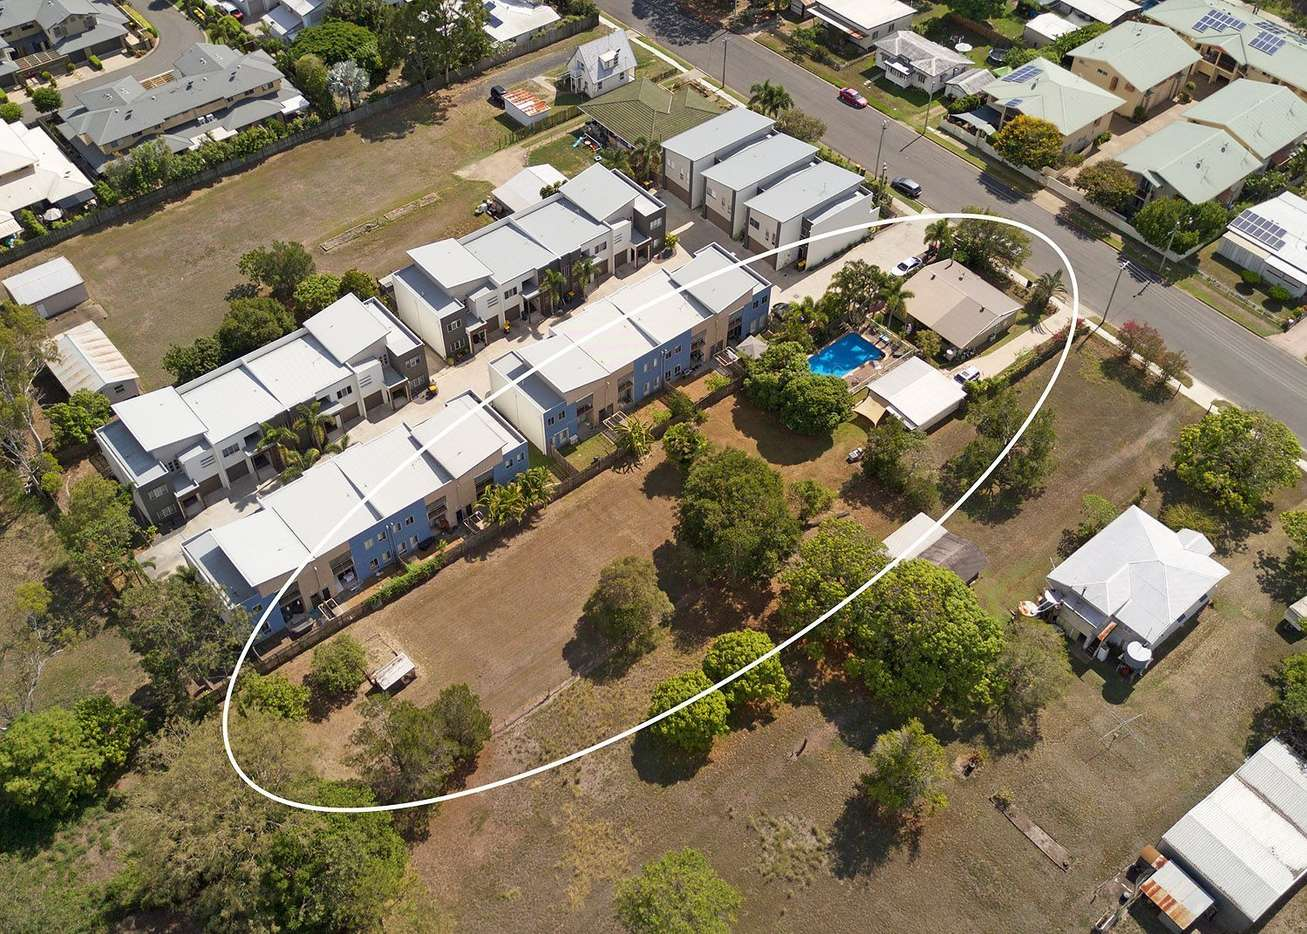 Main view of Homely house listing, 43 Stephenson Street, Pialba, QLD 4655